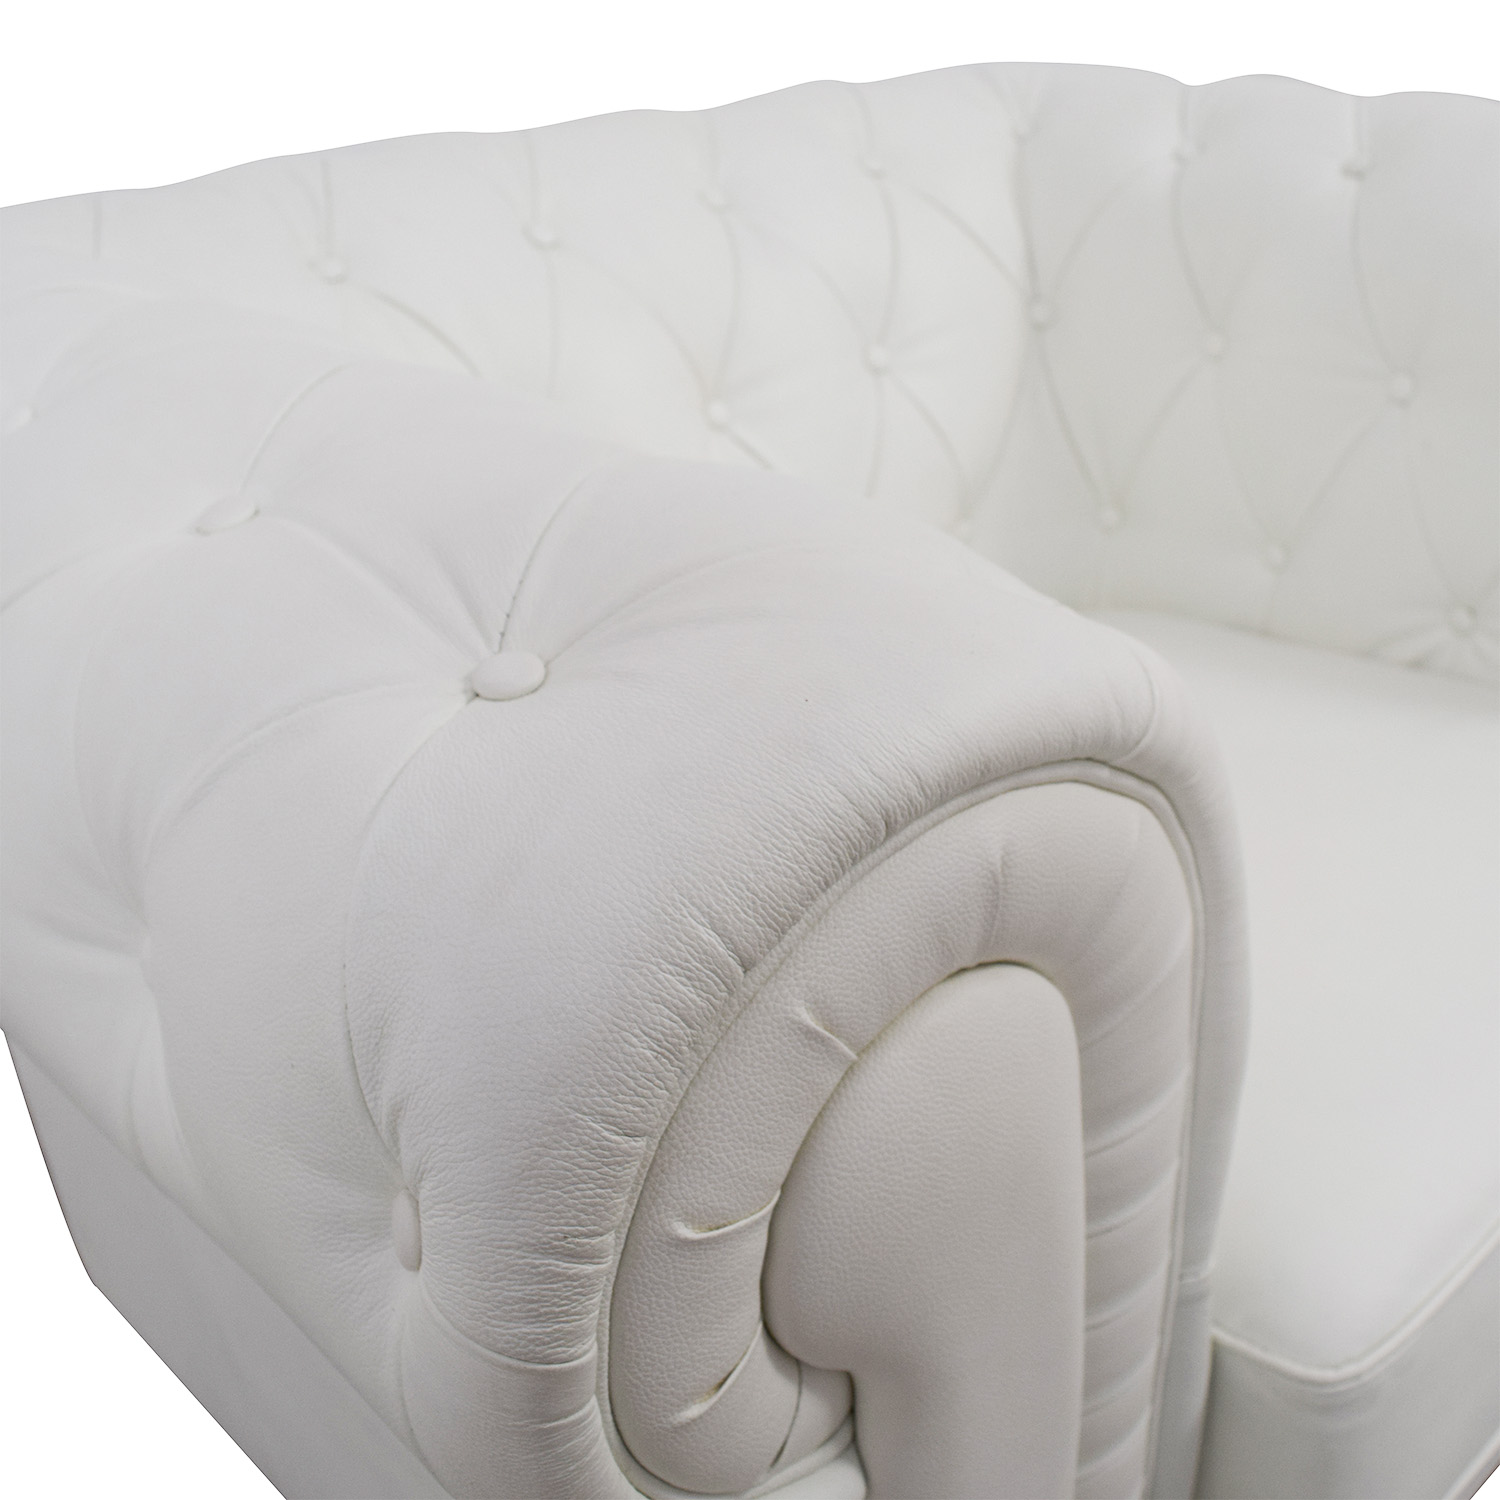 White Tufted Accent Chair 86 Off Chesterfield Tufted White Leather Accent Chair